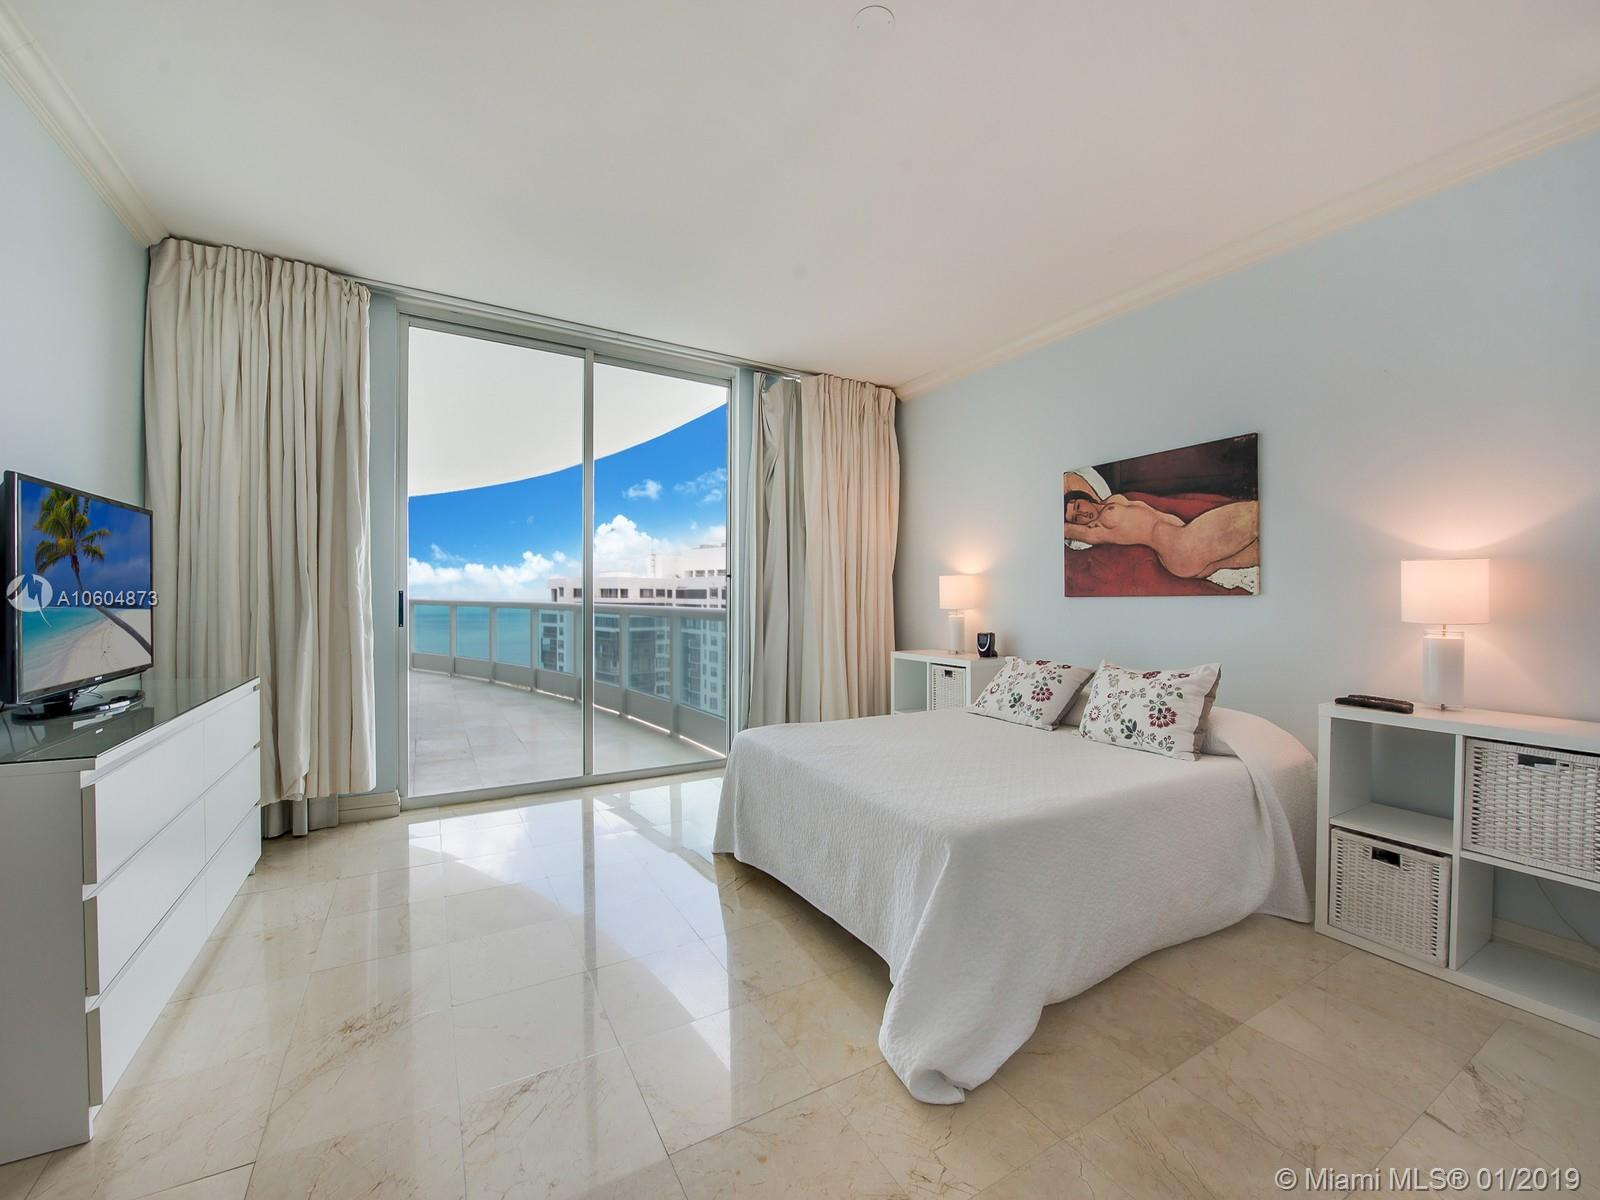 2127 Brickell Avenue, Miami, FL 33129, Bristol Tower Condominium #3102, Brickell, Miami A10604873 image #10